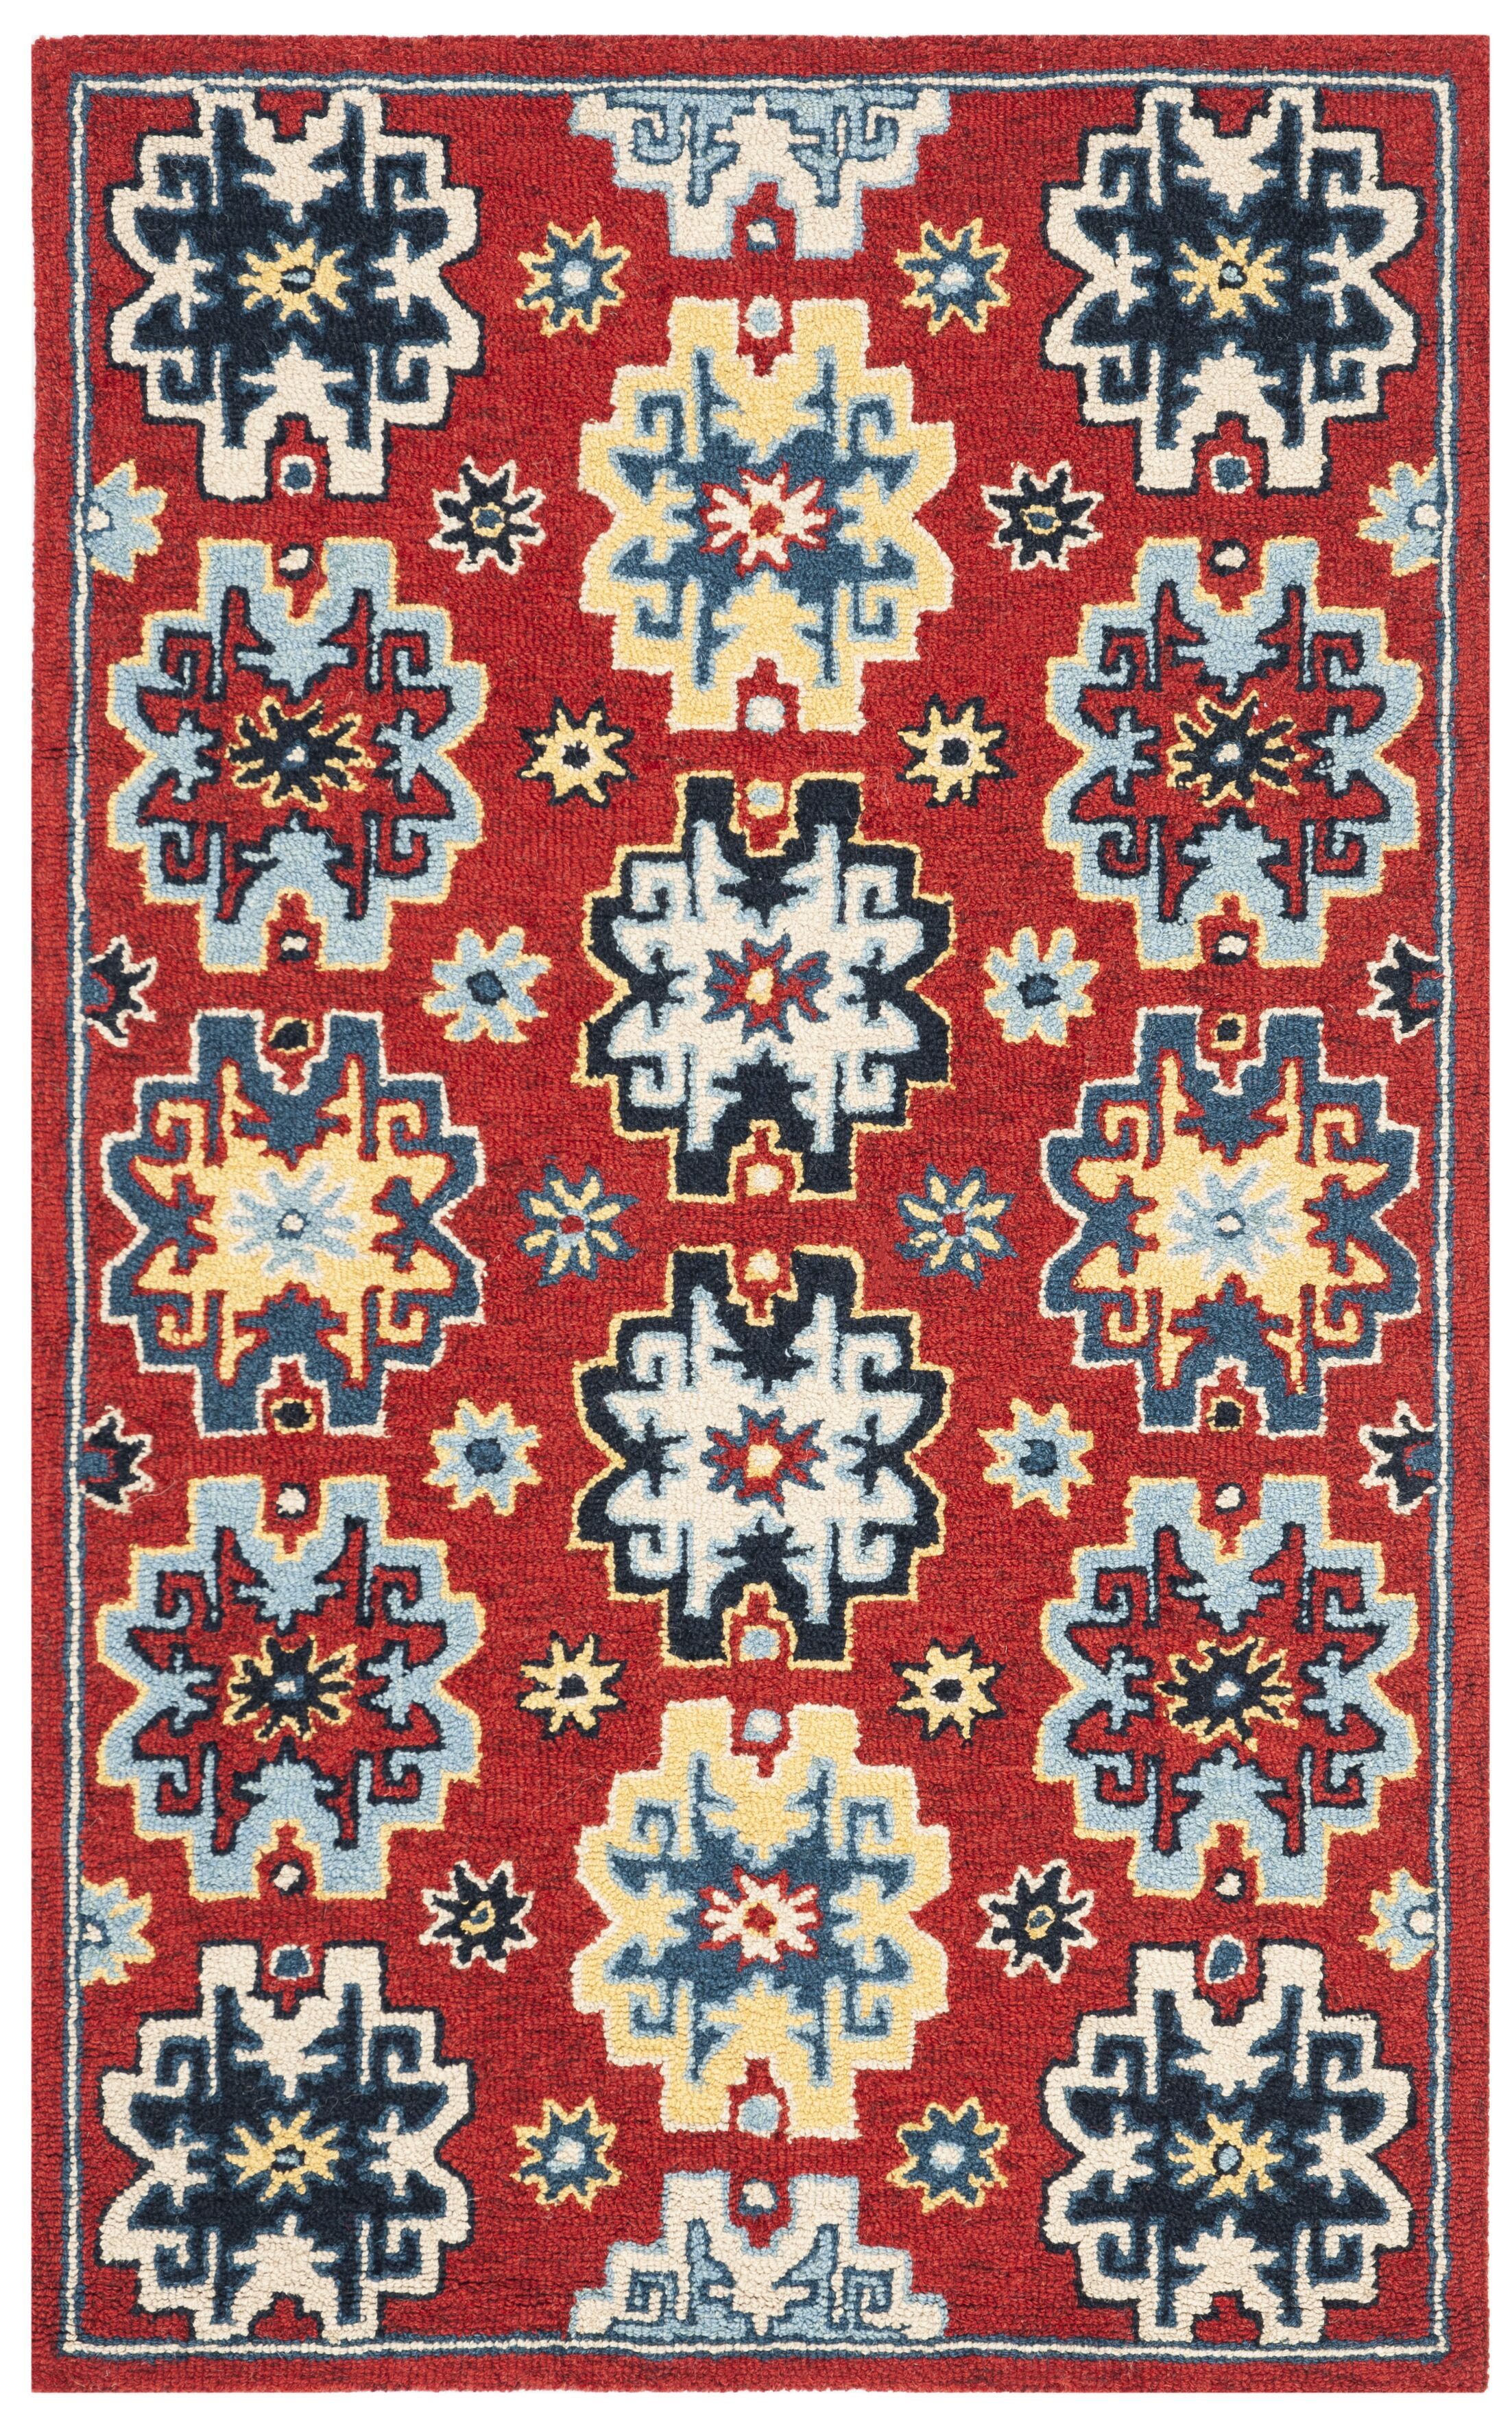 Betsy Hand-Tufted Wool Red/Blue Area Rug Rug Size: Rectangle 4' x 6'